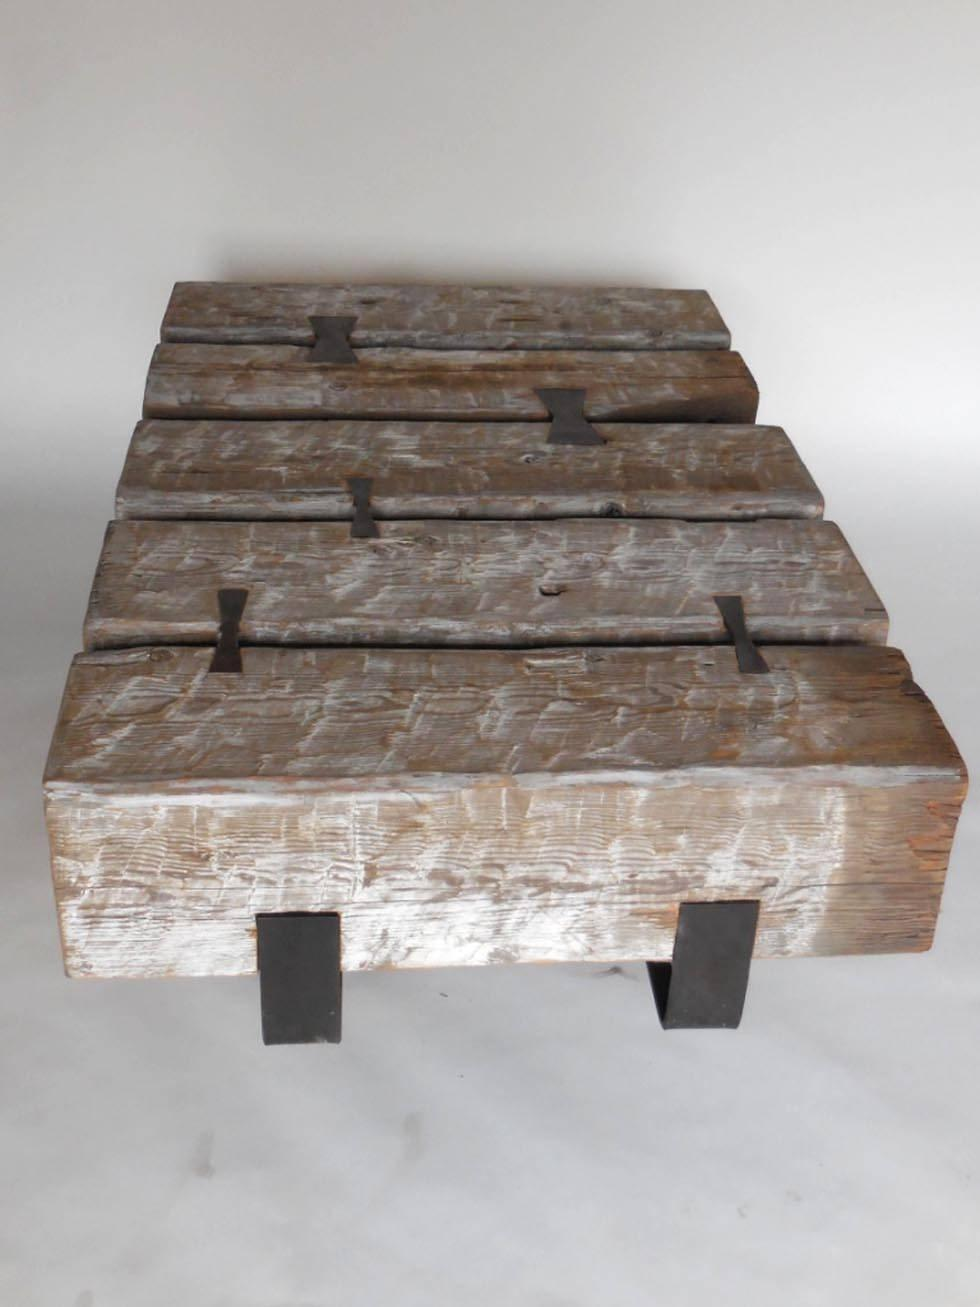 Rustic Modern Reclaimed Wood Beam Cocktail Table With Iron For Sale At 1stdibs